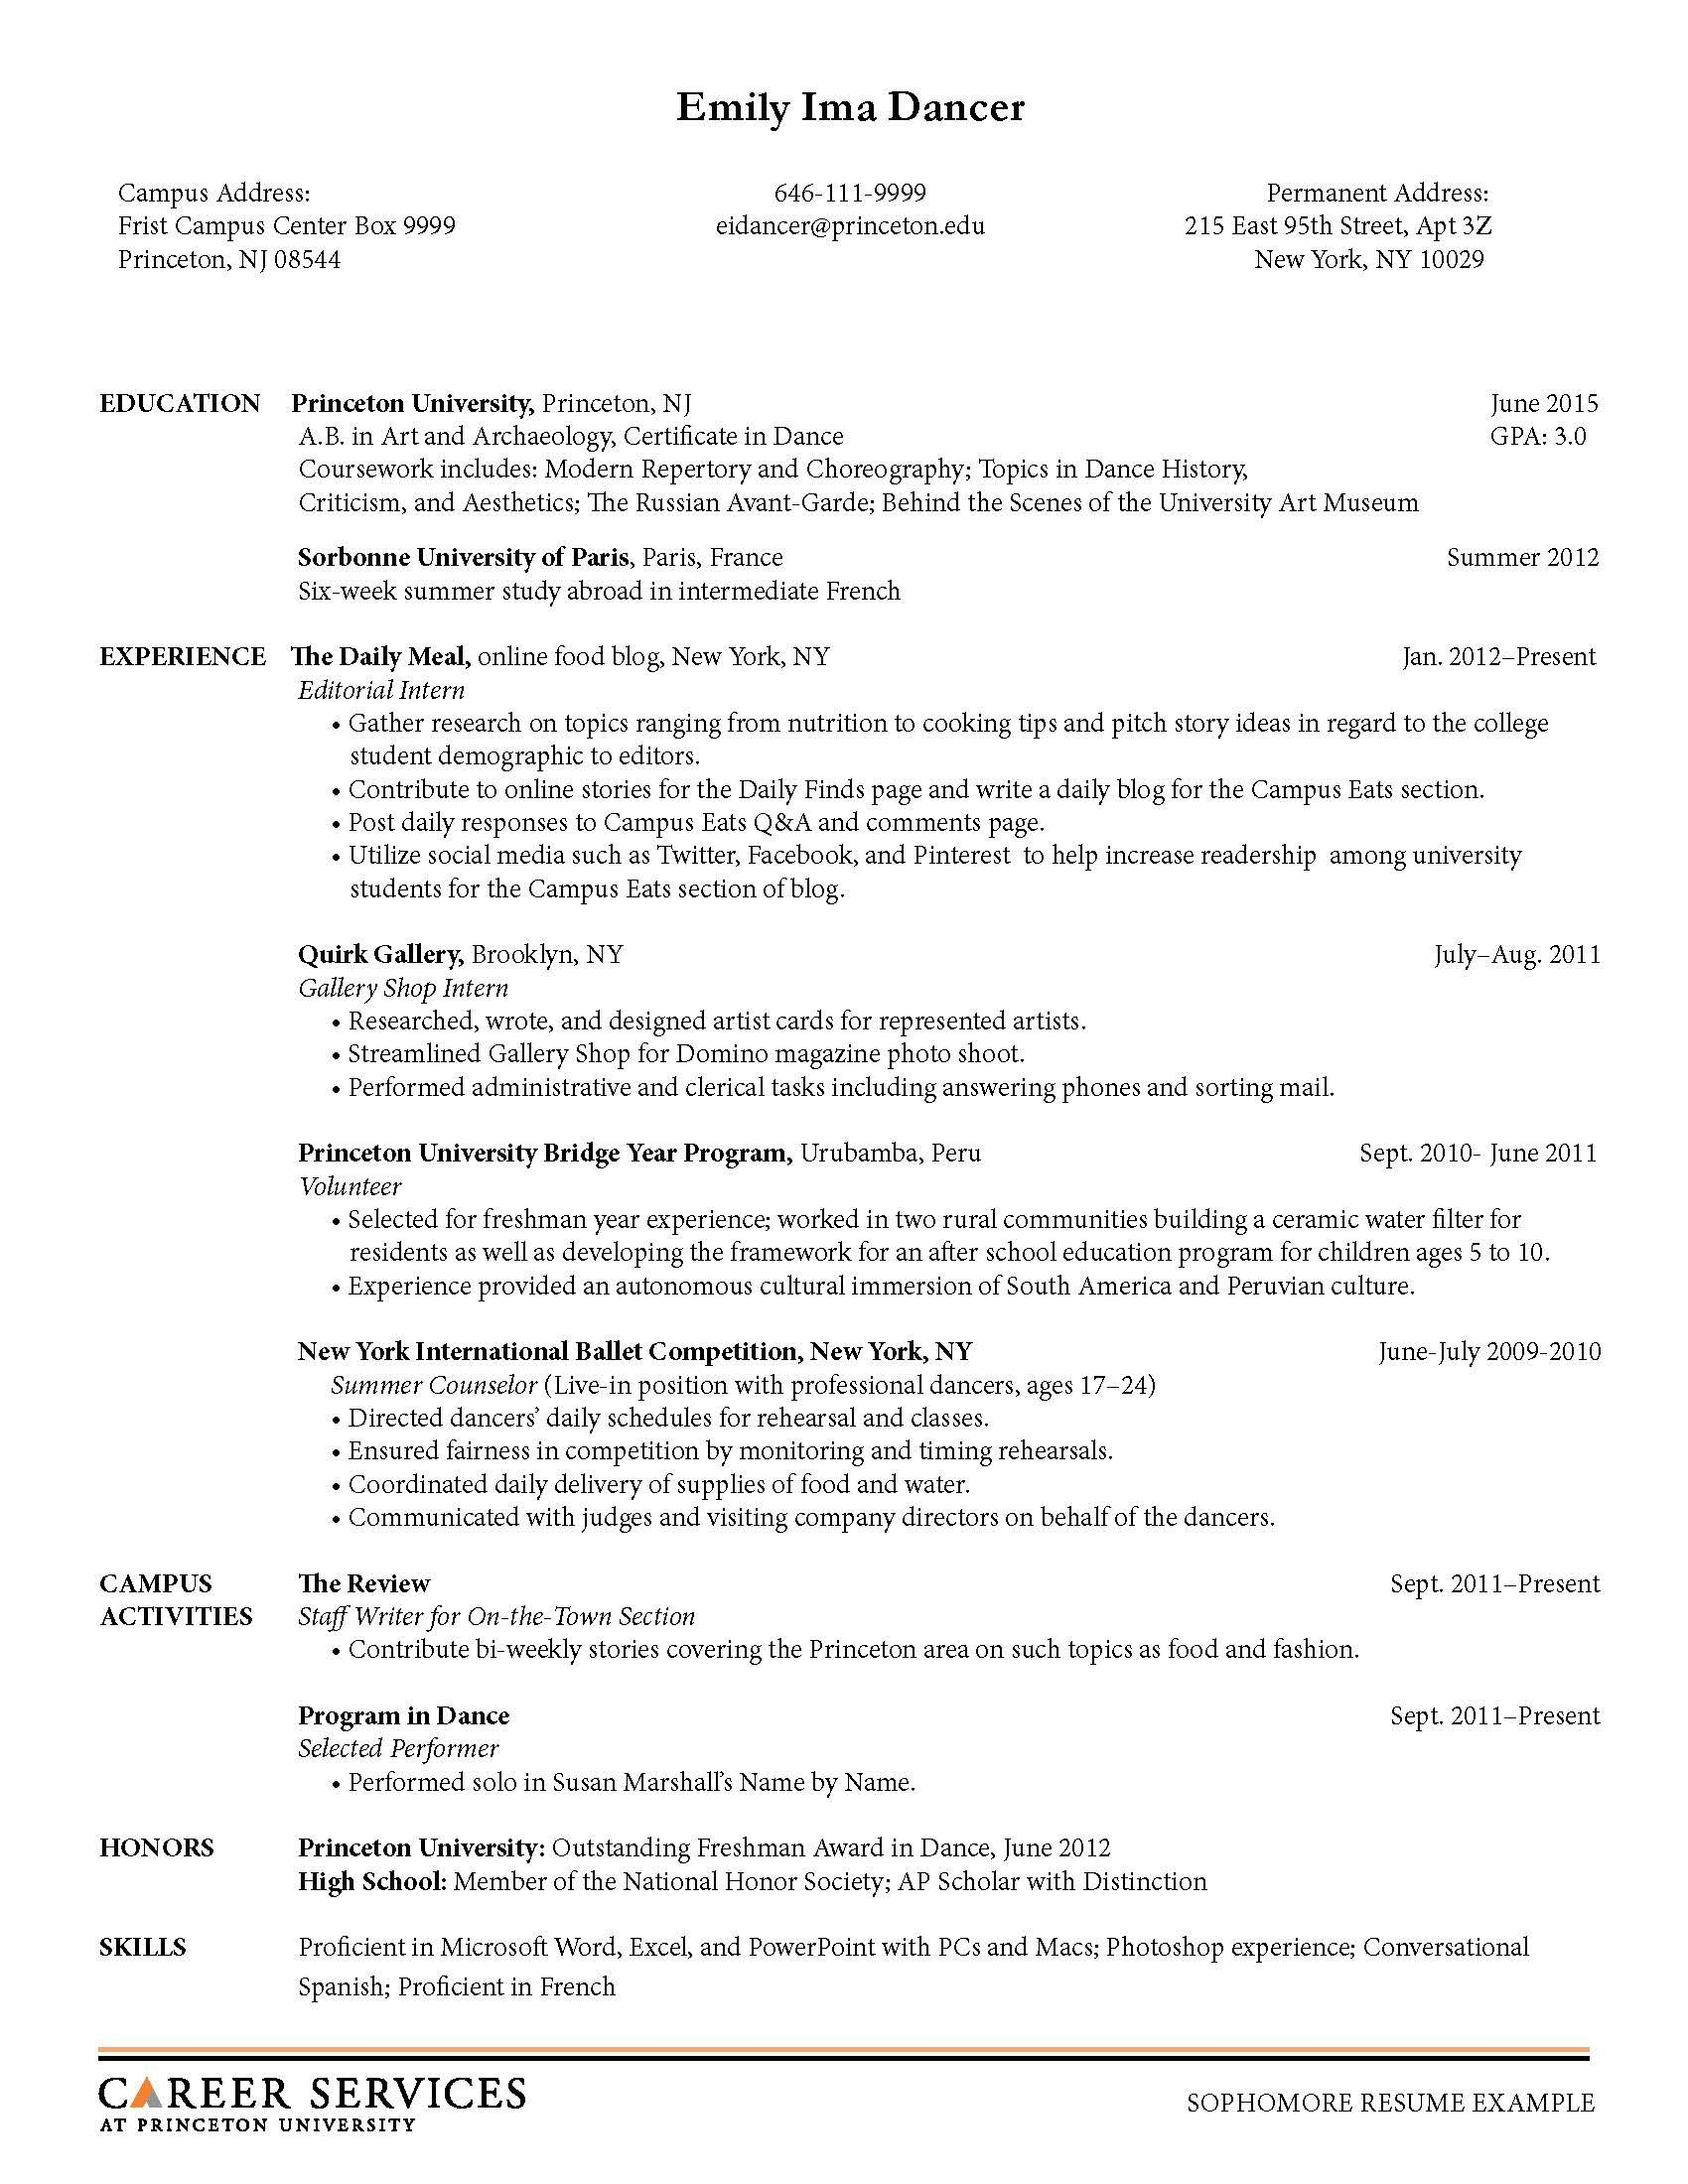 Opposenewapstandardsus  Outstanding Sample Resume Resume And Career On Pinterest With Magnificent Free Printable Fill In The Blank Resume Templates Besides Free Help With Resume Furthermore Resume Works With Breathtaking Good Summaries For Resumes Also Agile Project Manager Resume In Addition Inexperienced Resume And Expert Resume As Well As Clinical Laboratory Scientist Resume Additionally Front Desk Supervisor Resume From Pinterestcom With Opposenewapstandardsus  Magnificent Sample Resume Resume And Career On Pinterest With Breathtaking Free Printable Fill In The Blank Resume Templates Besides Free Help With Resume Furthermore Resume Works And Outstanding Good Summaries For Resumes Also Agile Project Manager Resume In Addition Inexperienced Resume From Pinterestcom